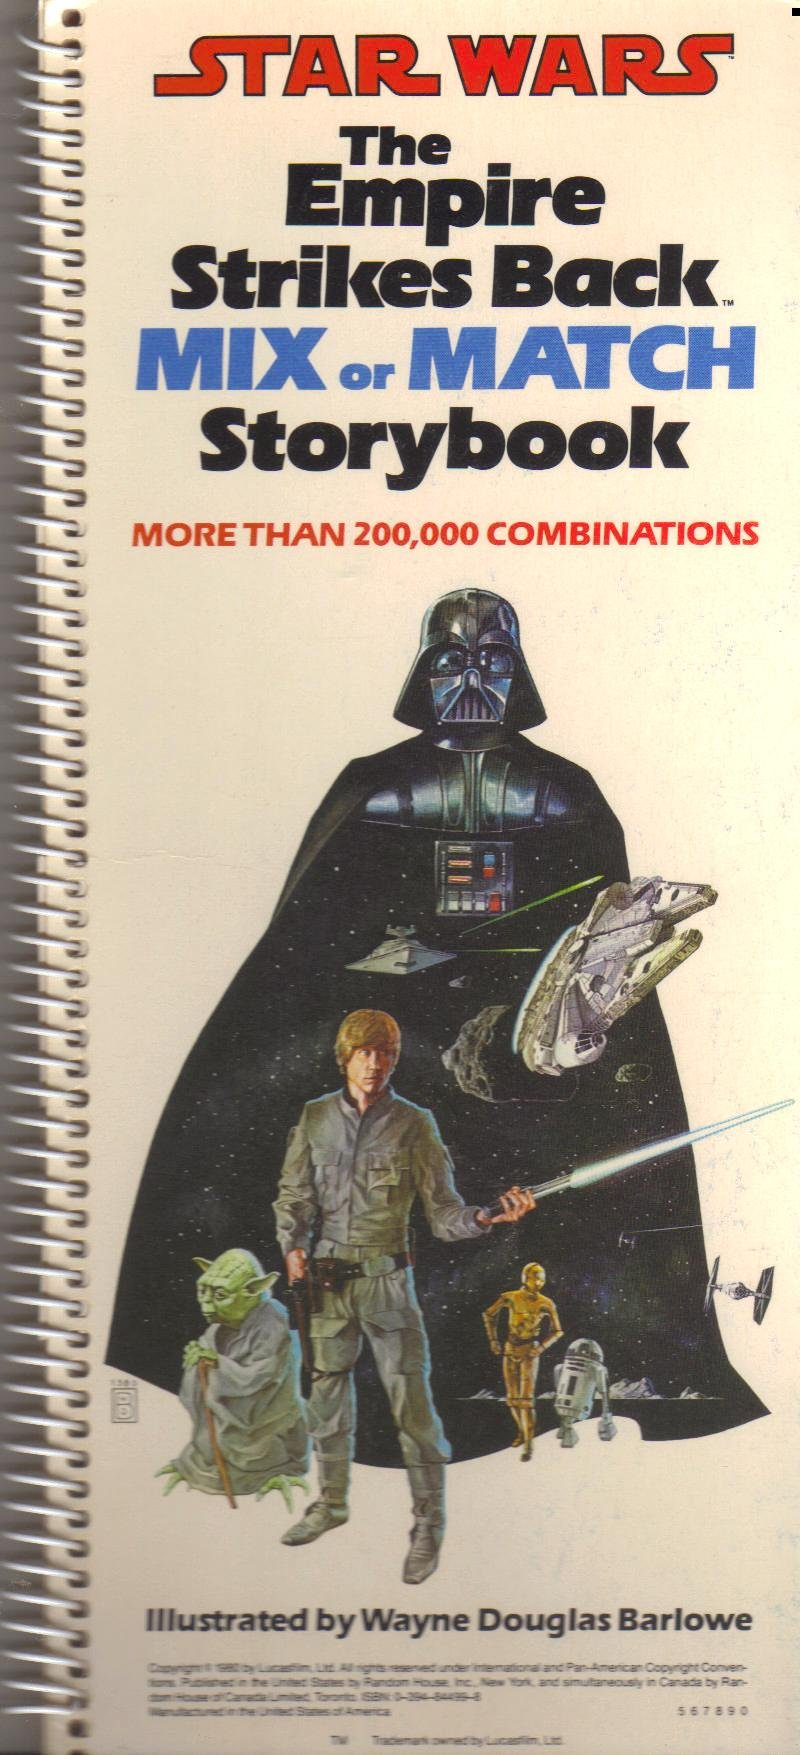 Star Wars: The Empire Strikes Back Mix or Match Storybook